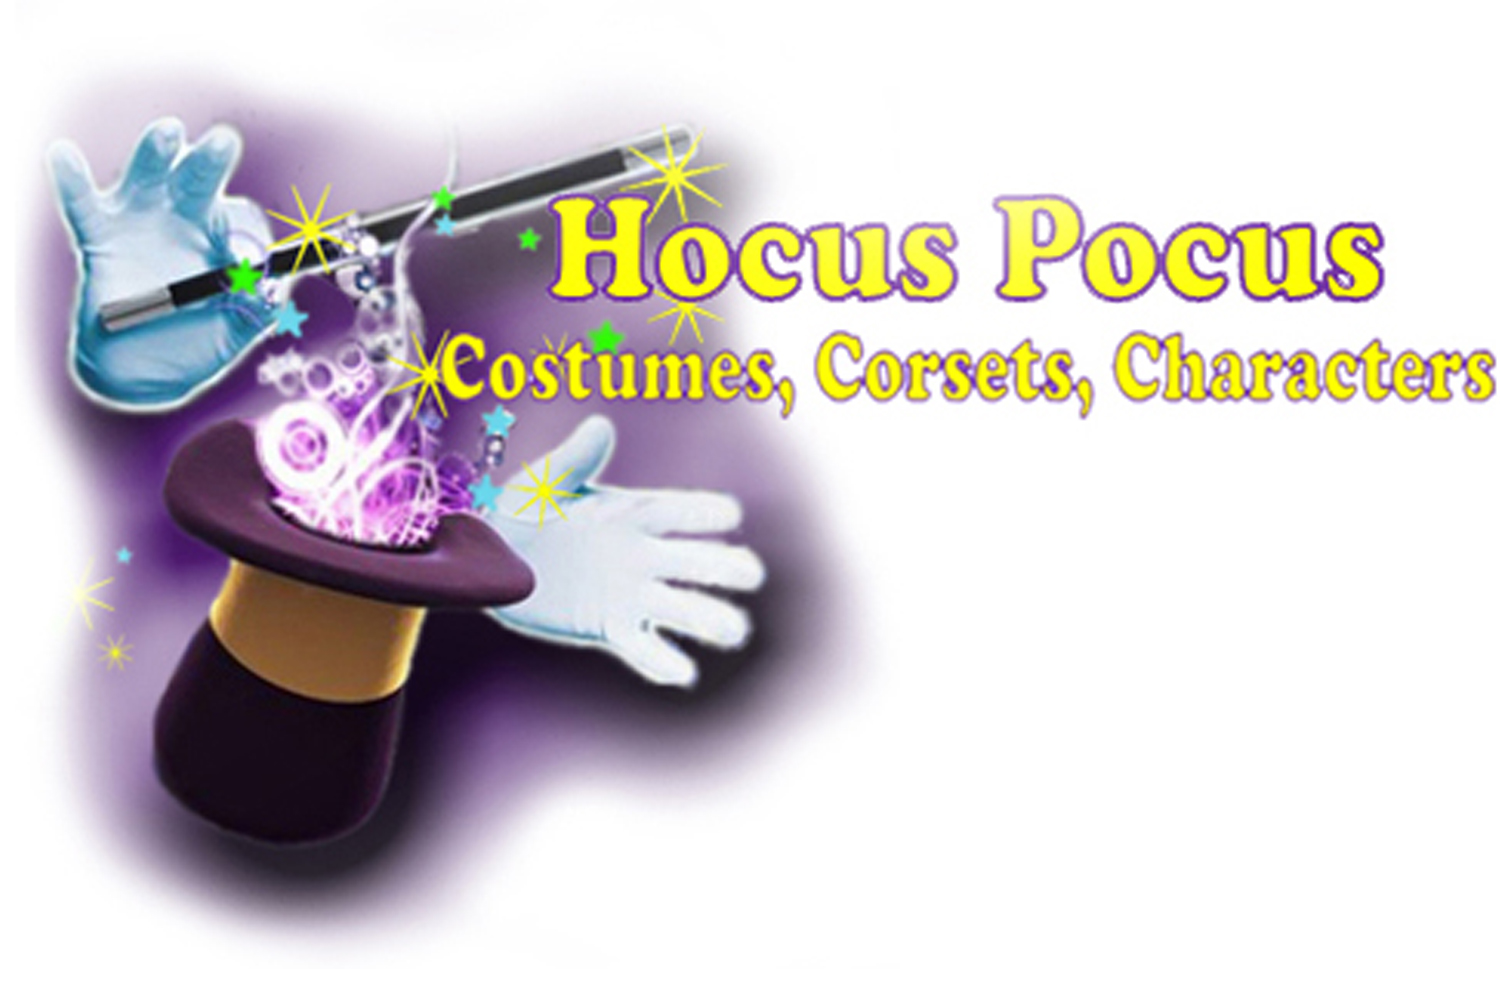 Hocus Pocus - Costumes, Corsets, Characters